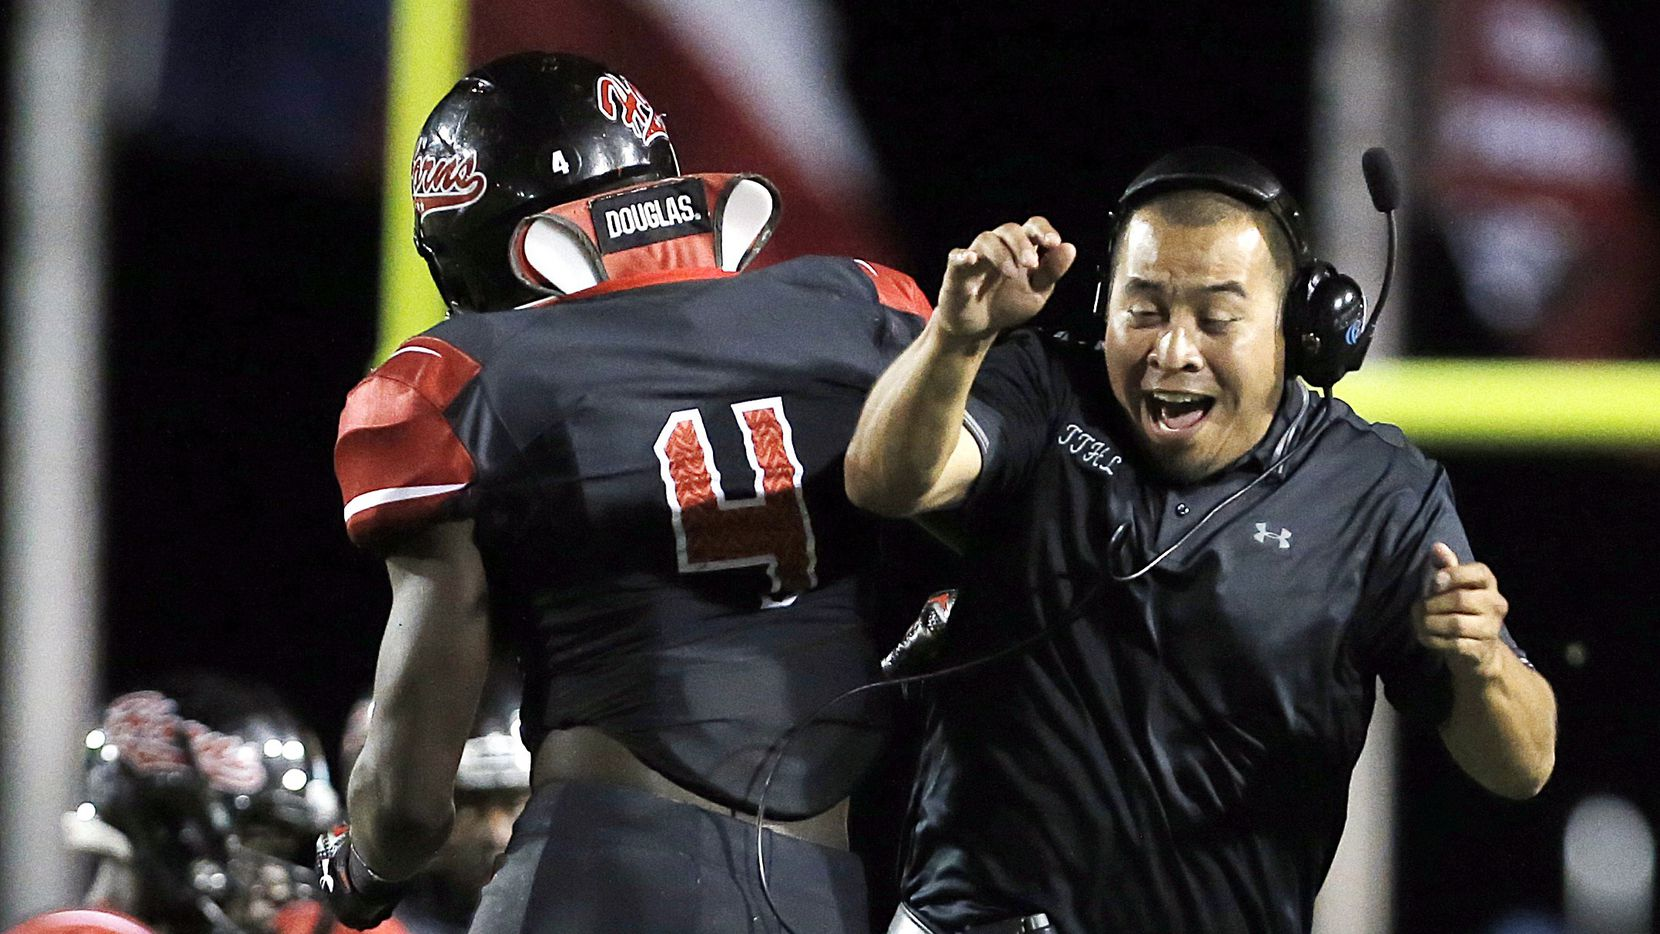 Cedar Hill defensive line coach Francisco Sandoval, right, celebrates with senior linebacker Xavier Hall (4) a fourth down stop against Skyline during the first half of a high school football game at Cedar Hill High School, Friday, September 11, 2015.